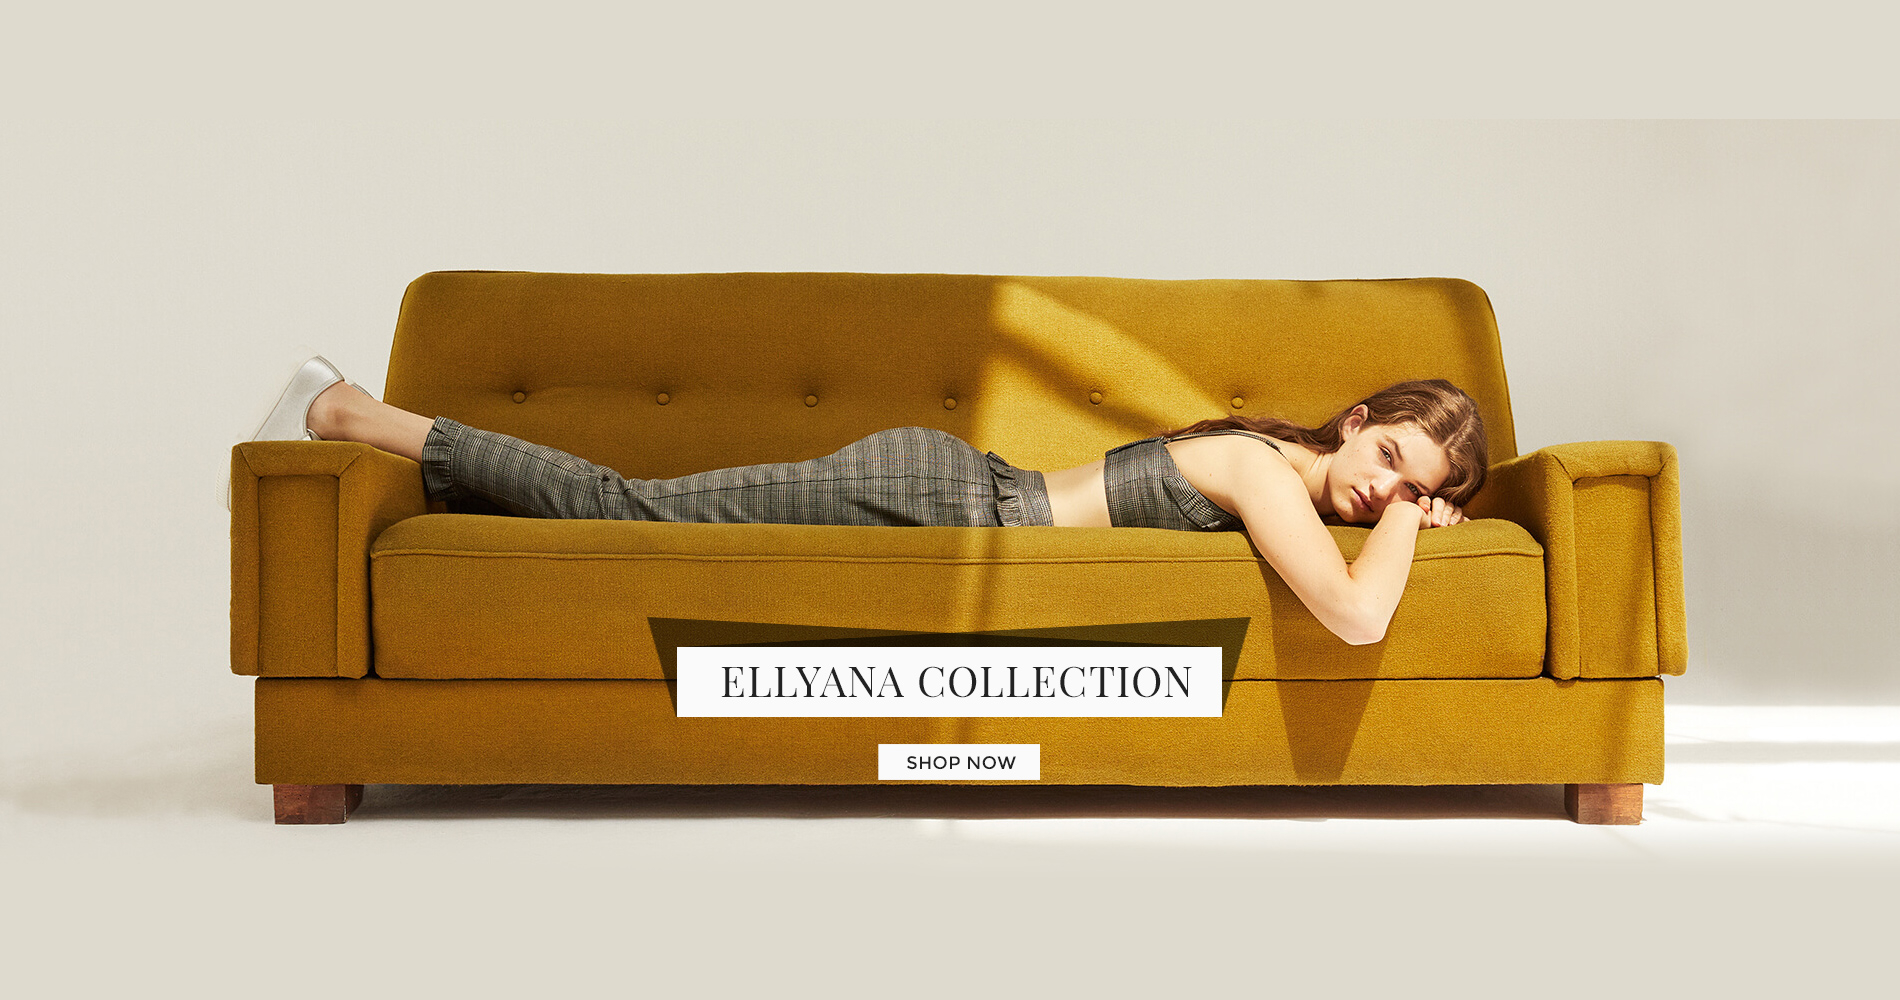 Ellyana Collection